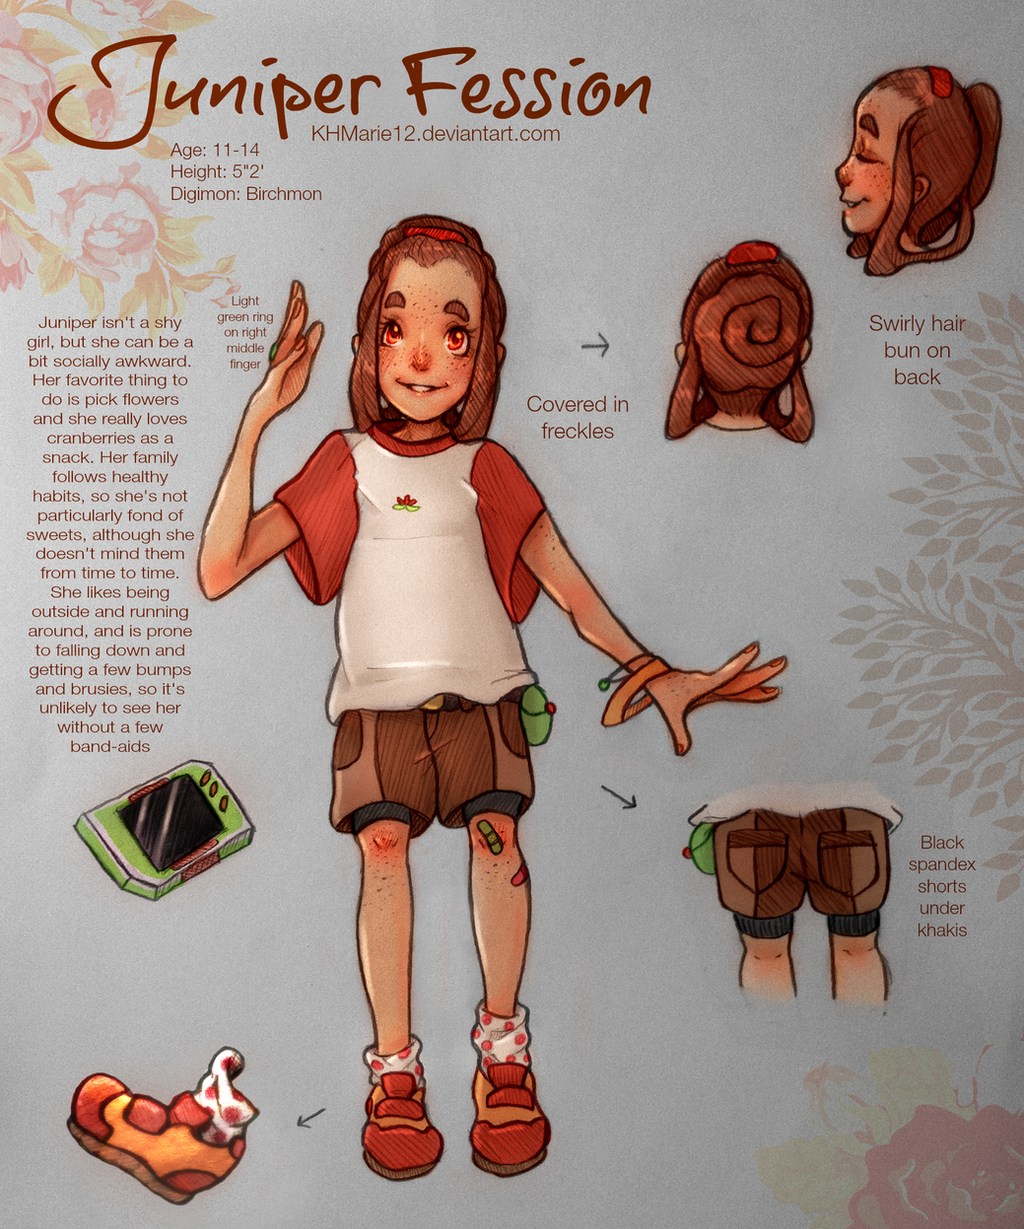 Character Design Competition 2015 : Digimon character design contest juniper by khmariexii on